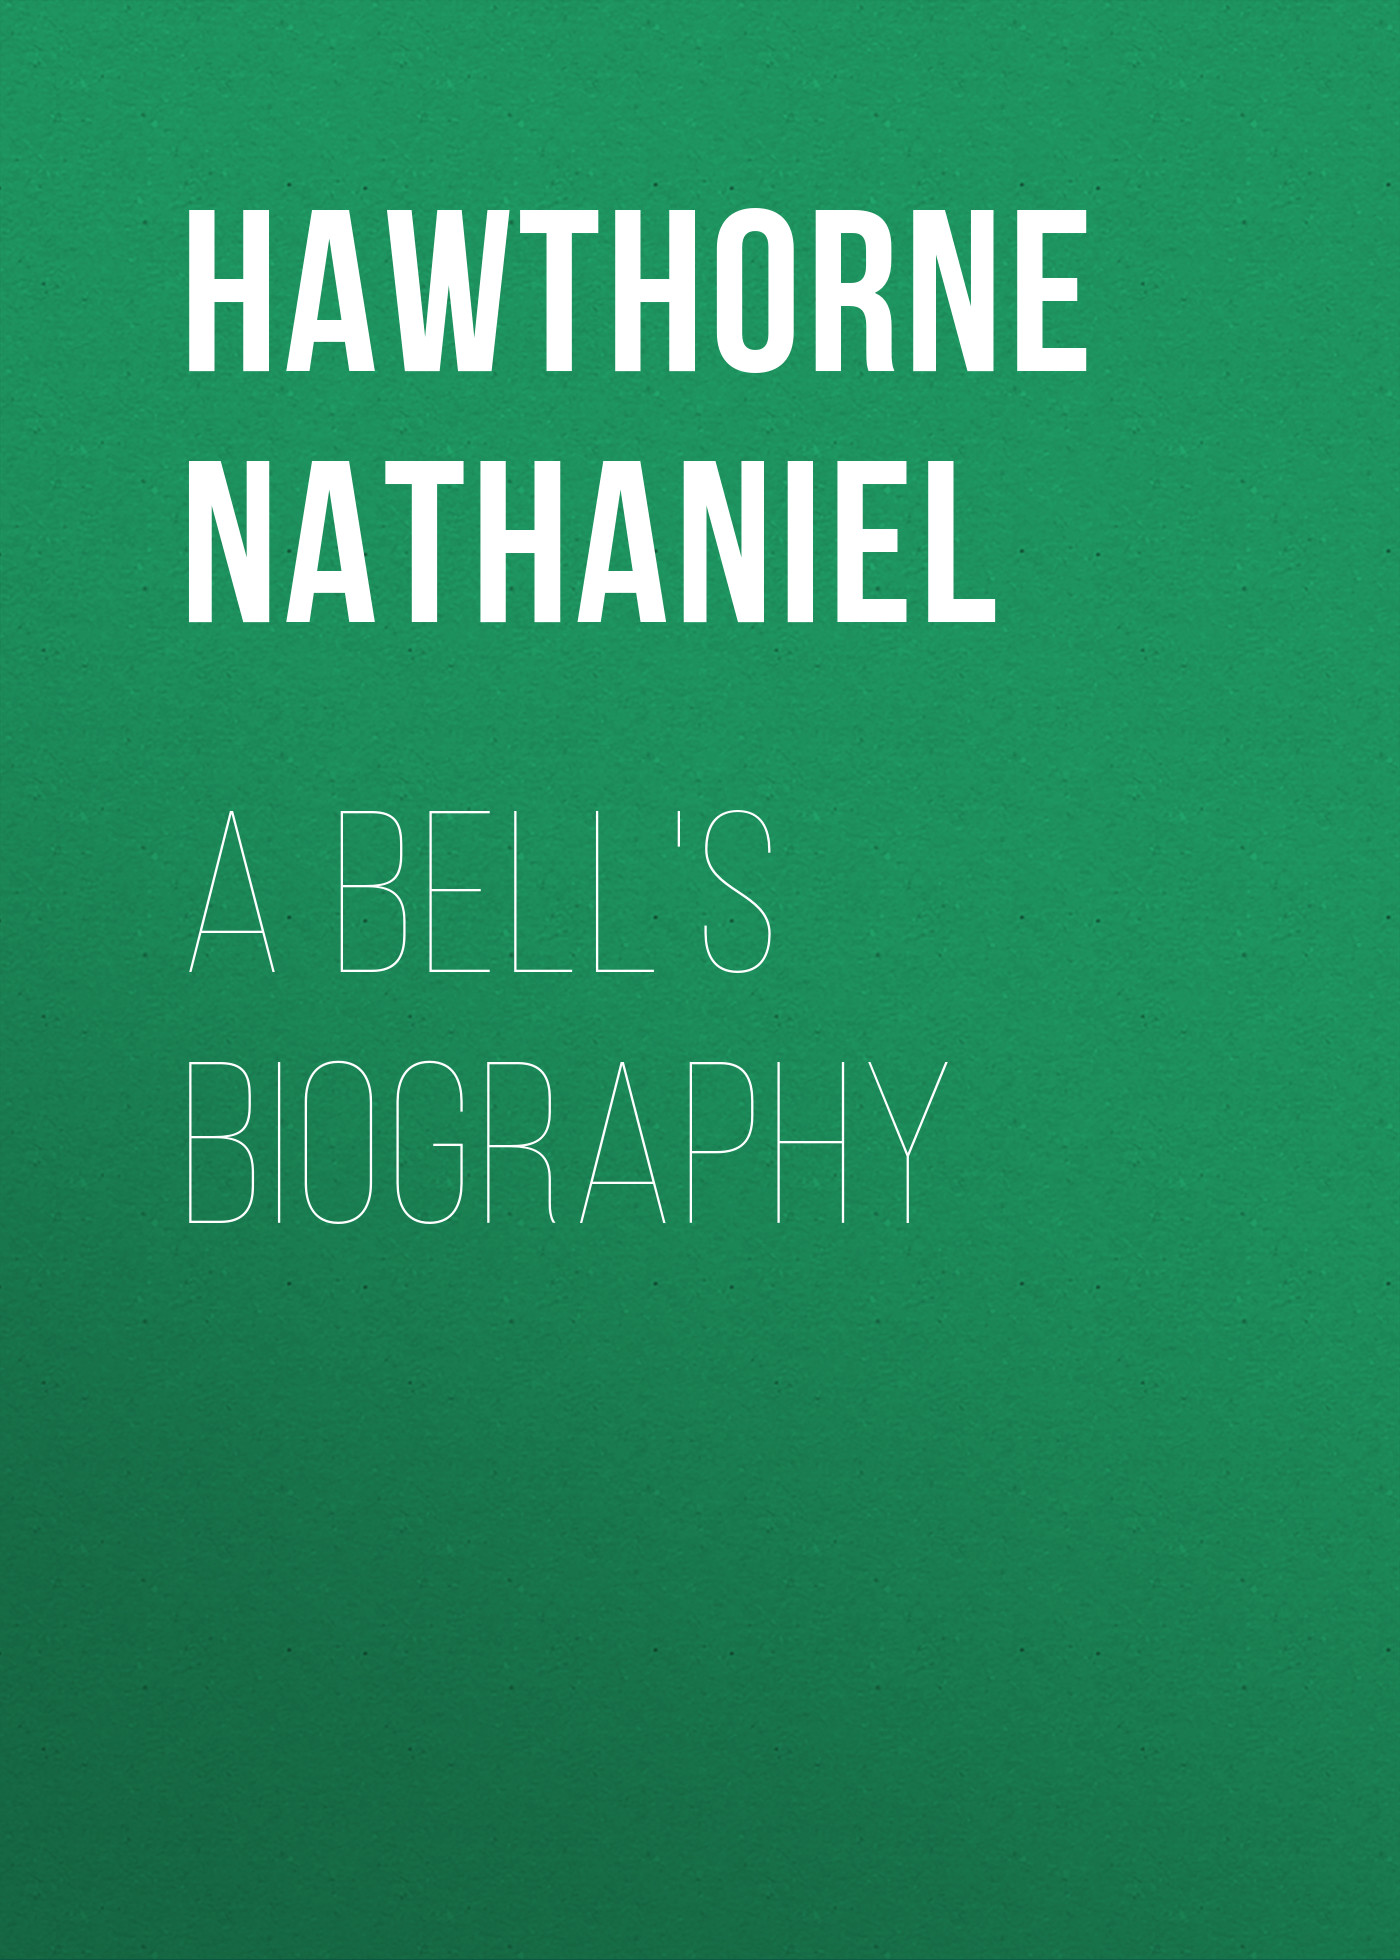 Hawthorne Nathaniel A Bell's Biography great military commanders georgy zhukov a biography